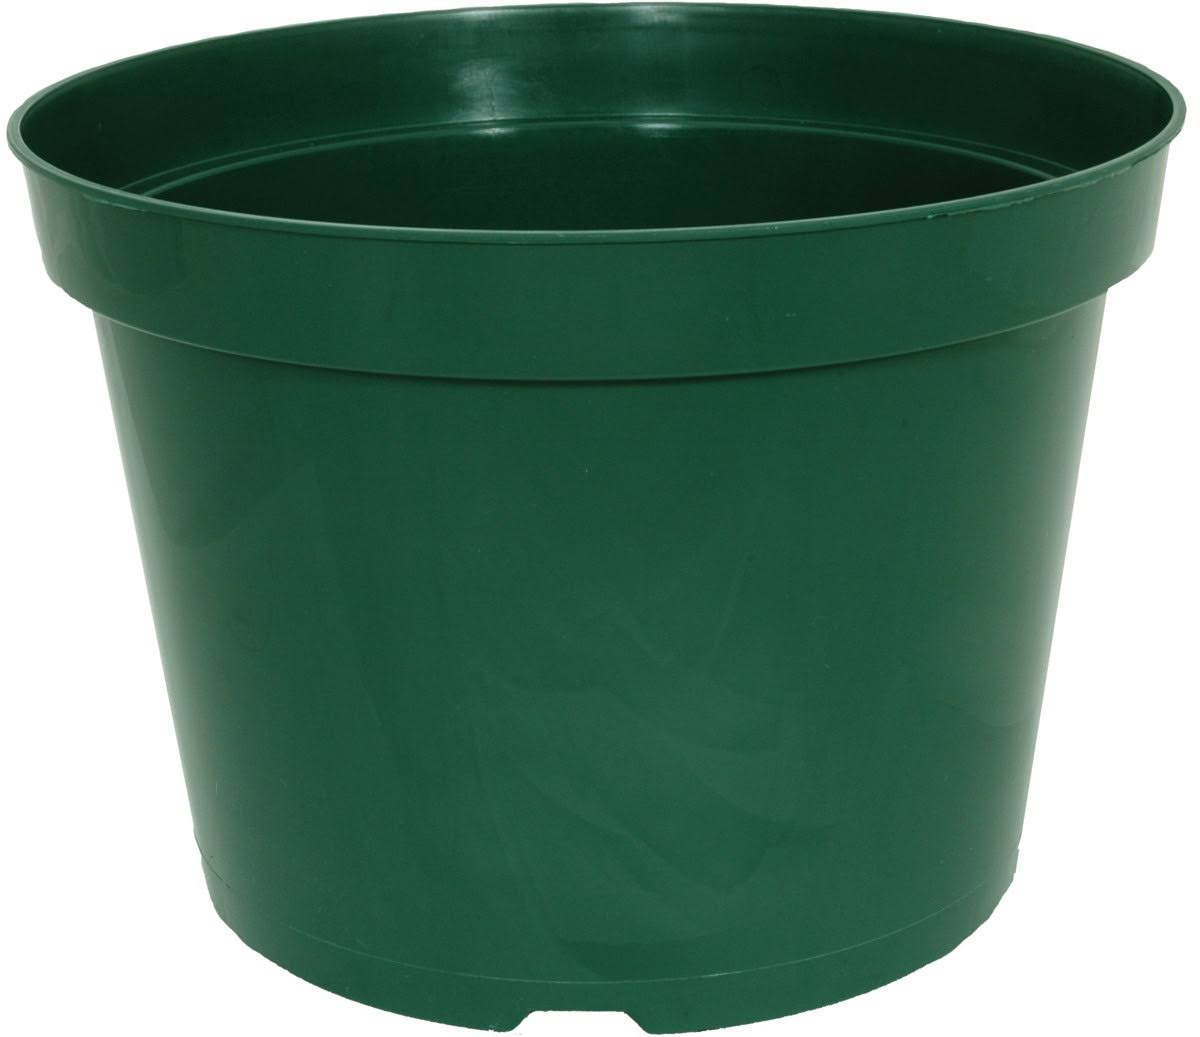 Planters Pride AZE060030G Round Grower Pot - Green, 6""